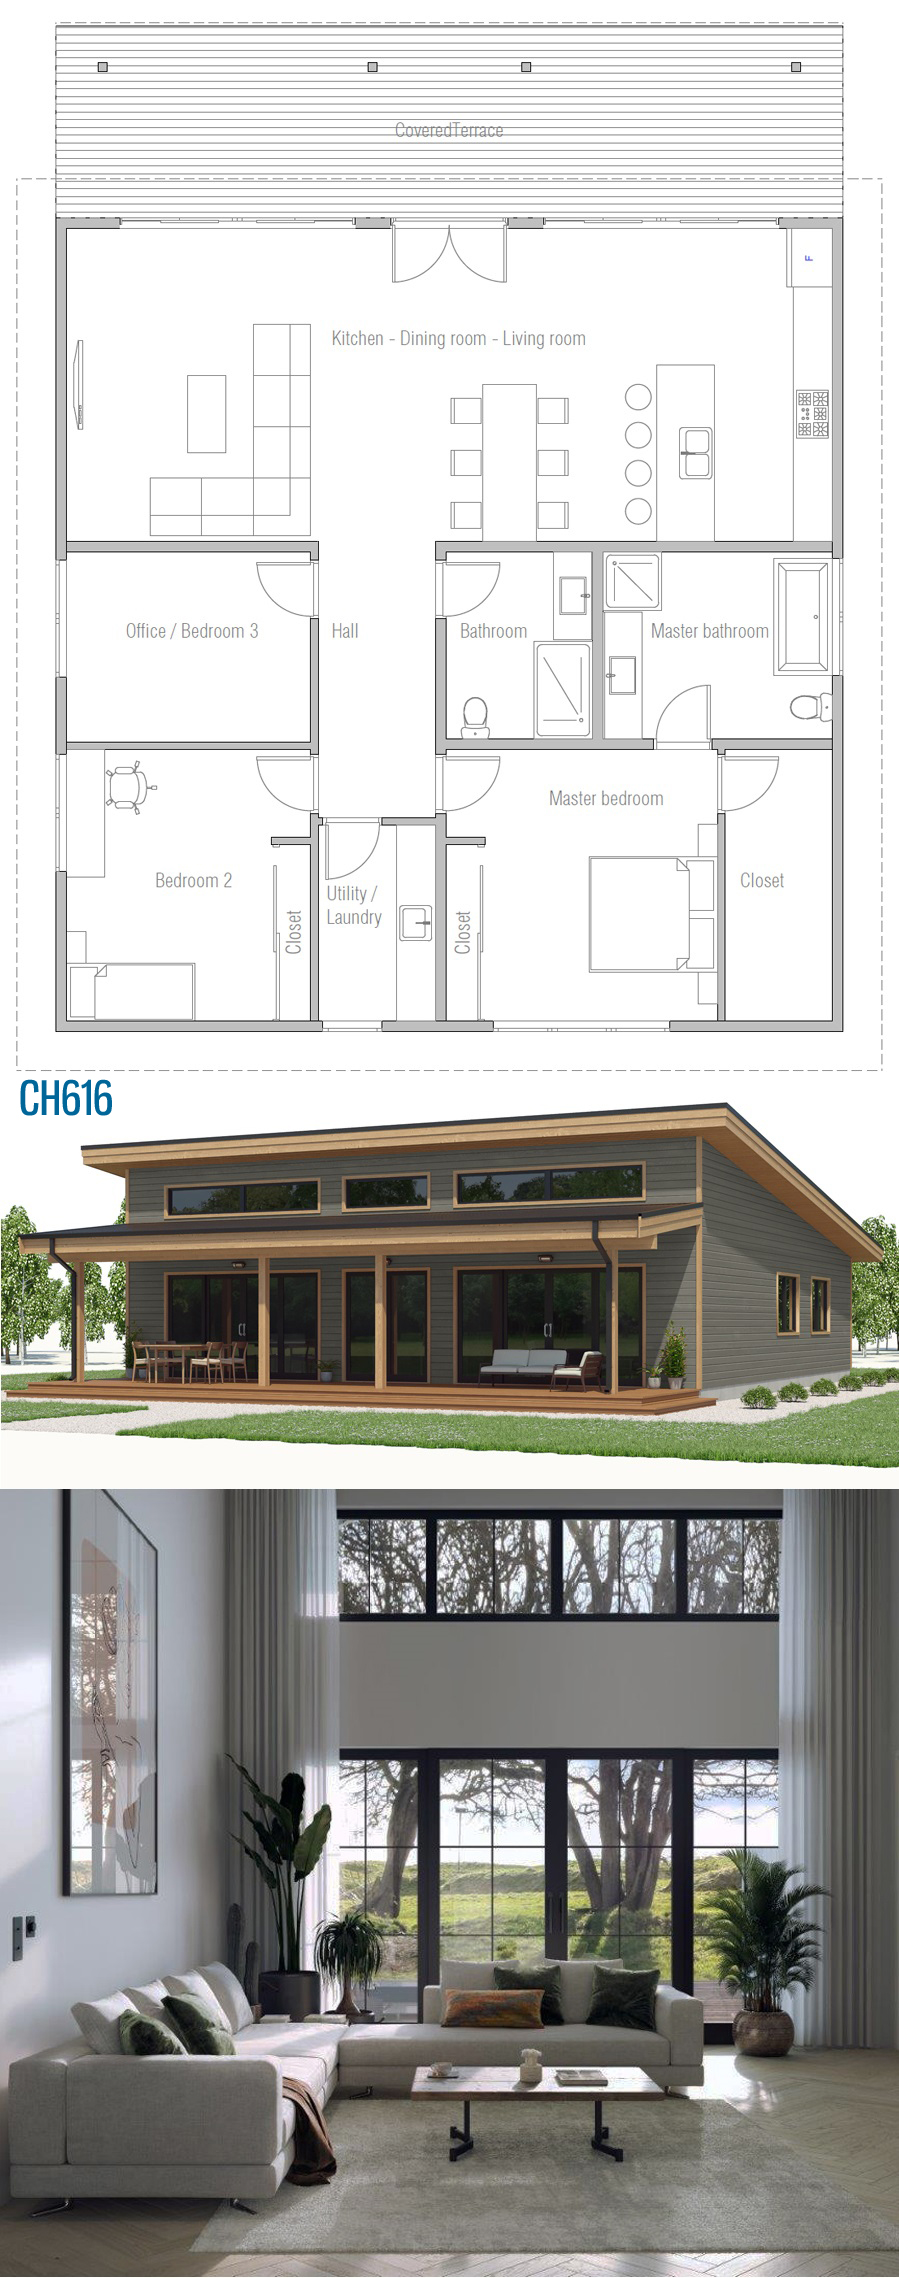 Floor Plan Ch616 Architecture House Dream House Plans Small House Plans